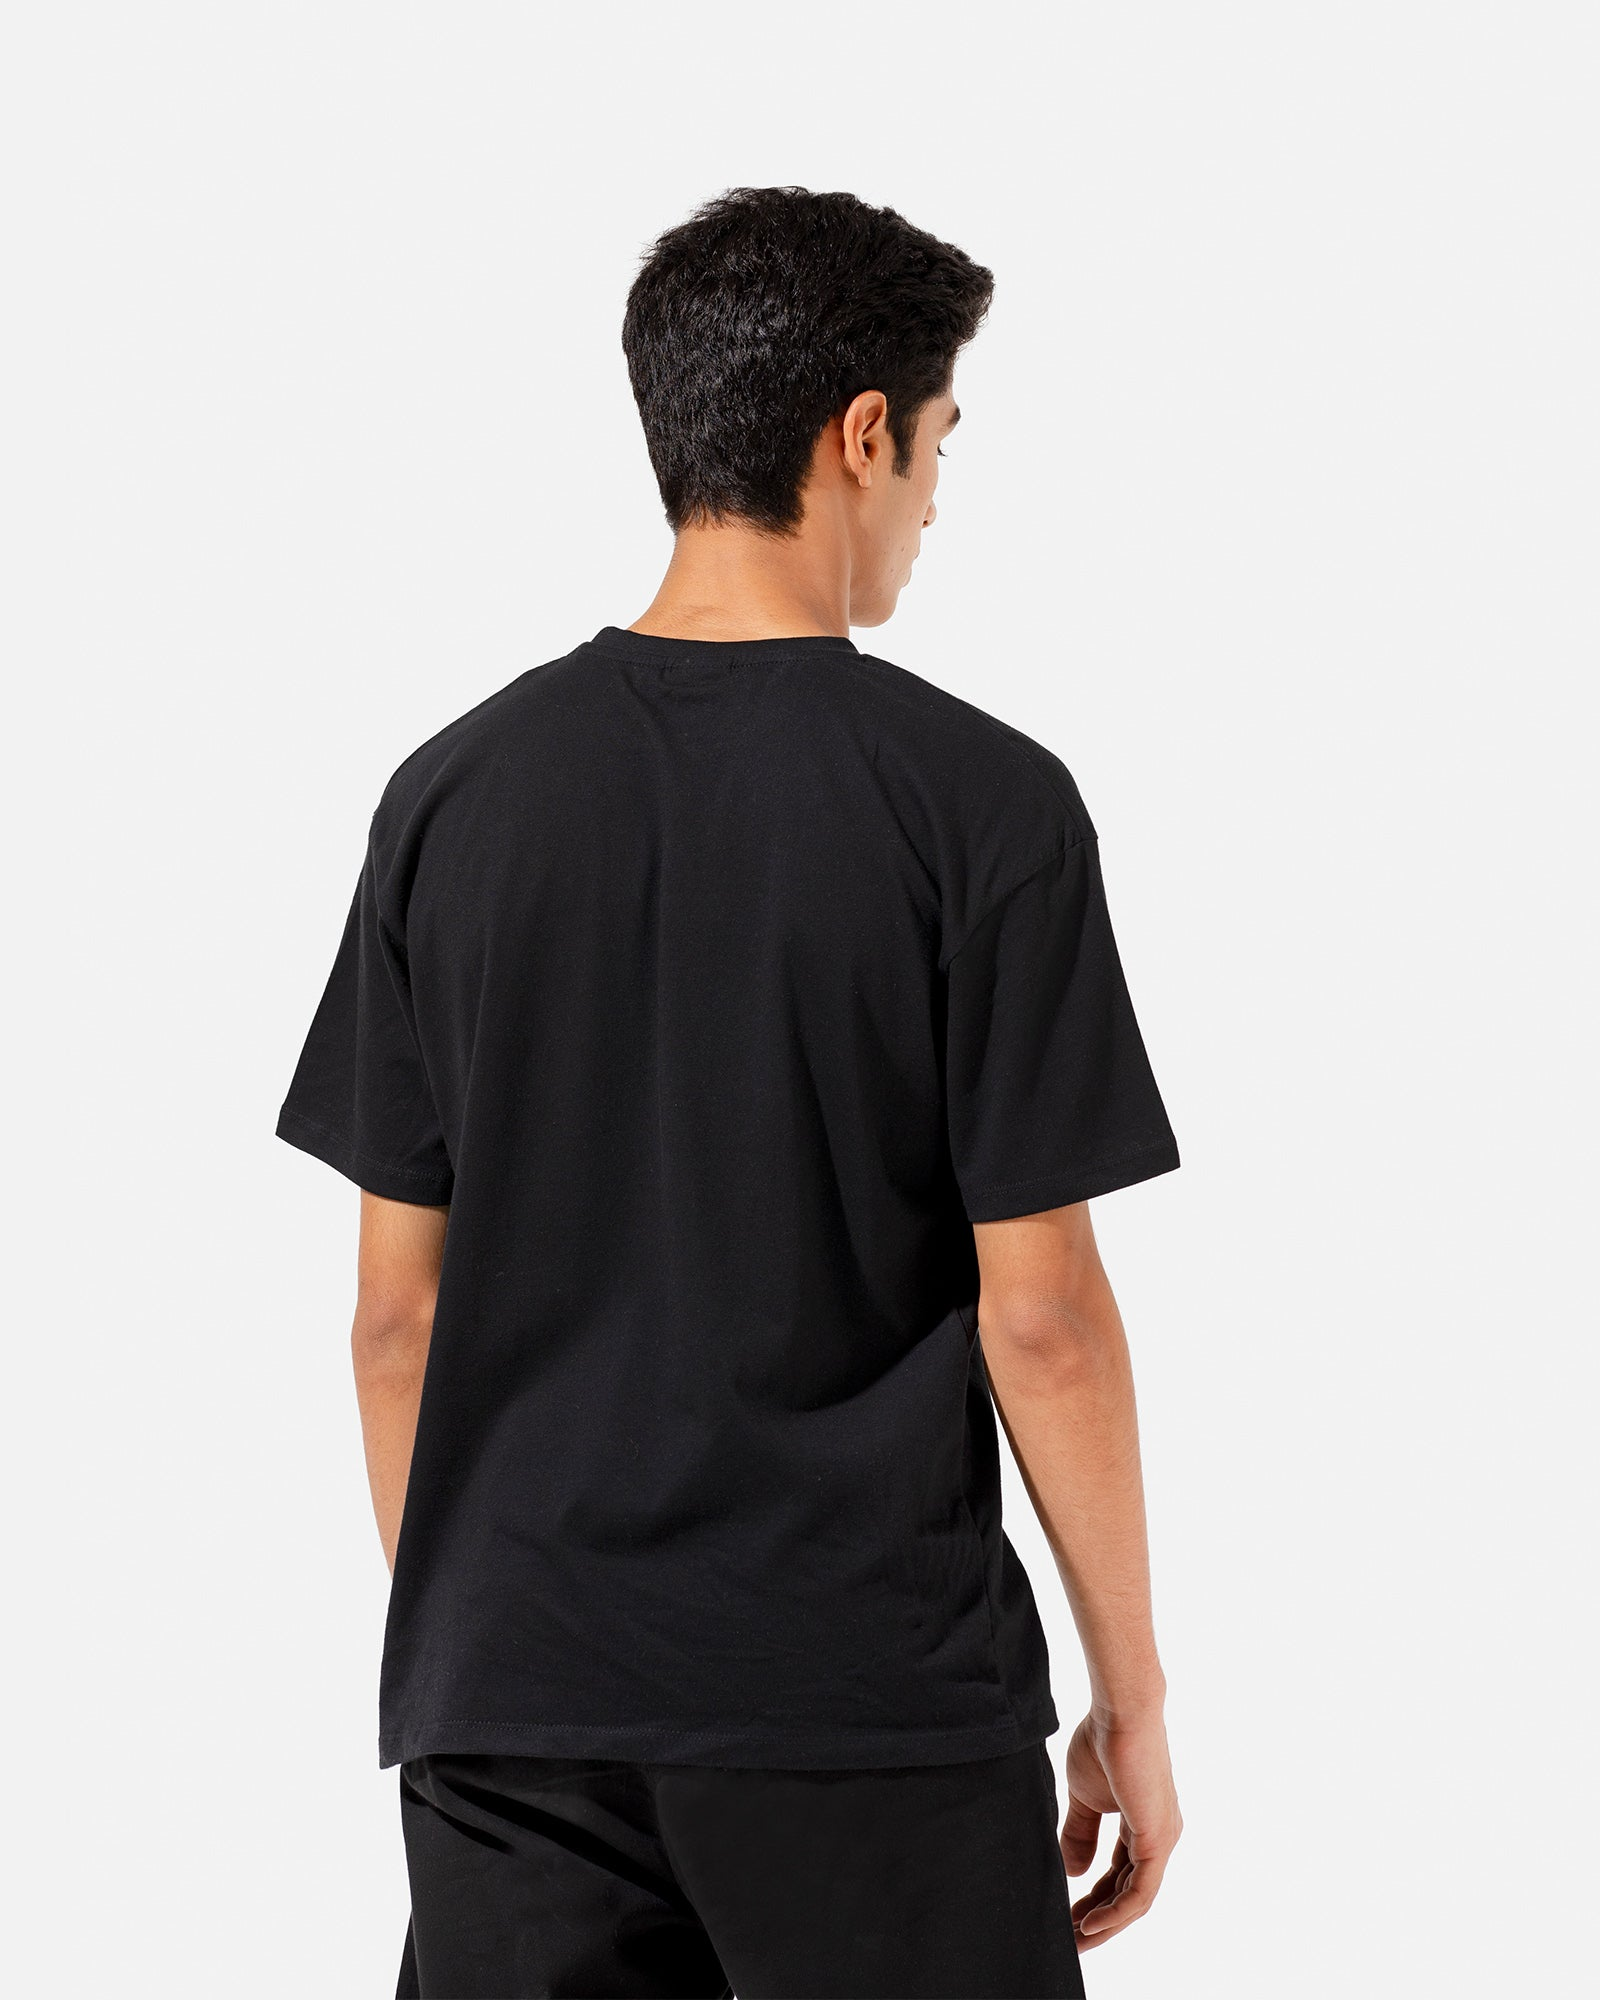 Relax Fit Crew Neck Tee